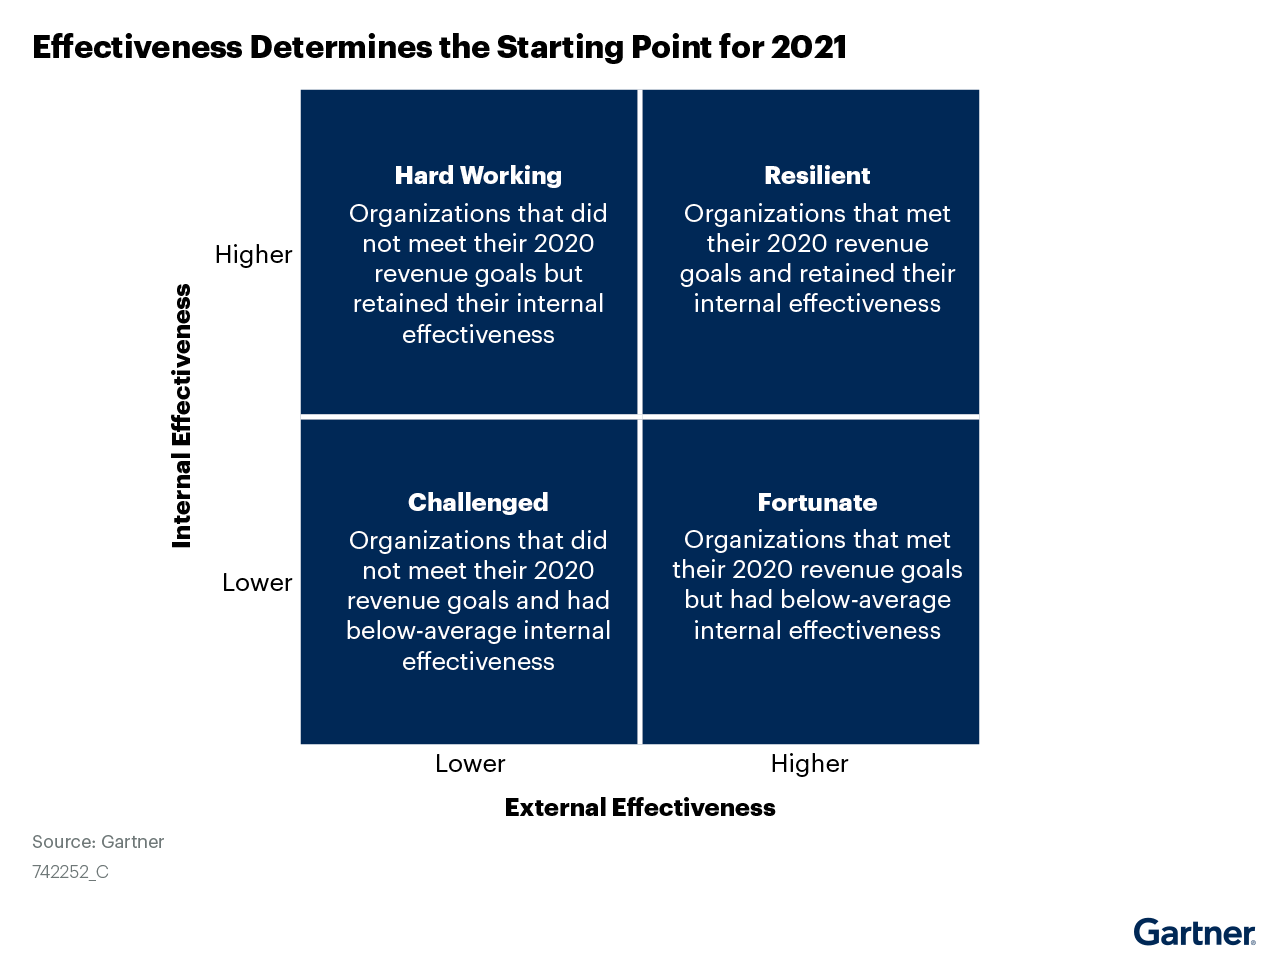 Figure 2: Effectiveness Determines the Starting Point for 2021